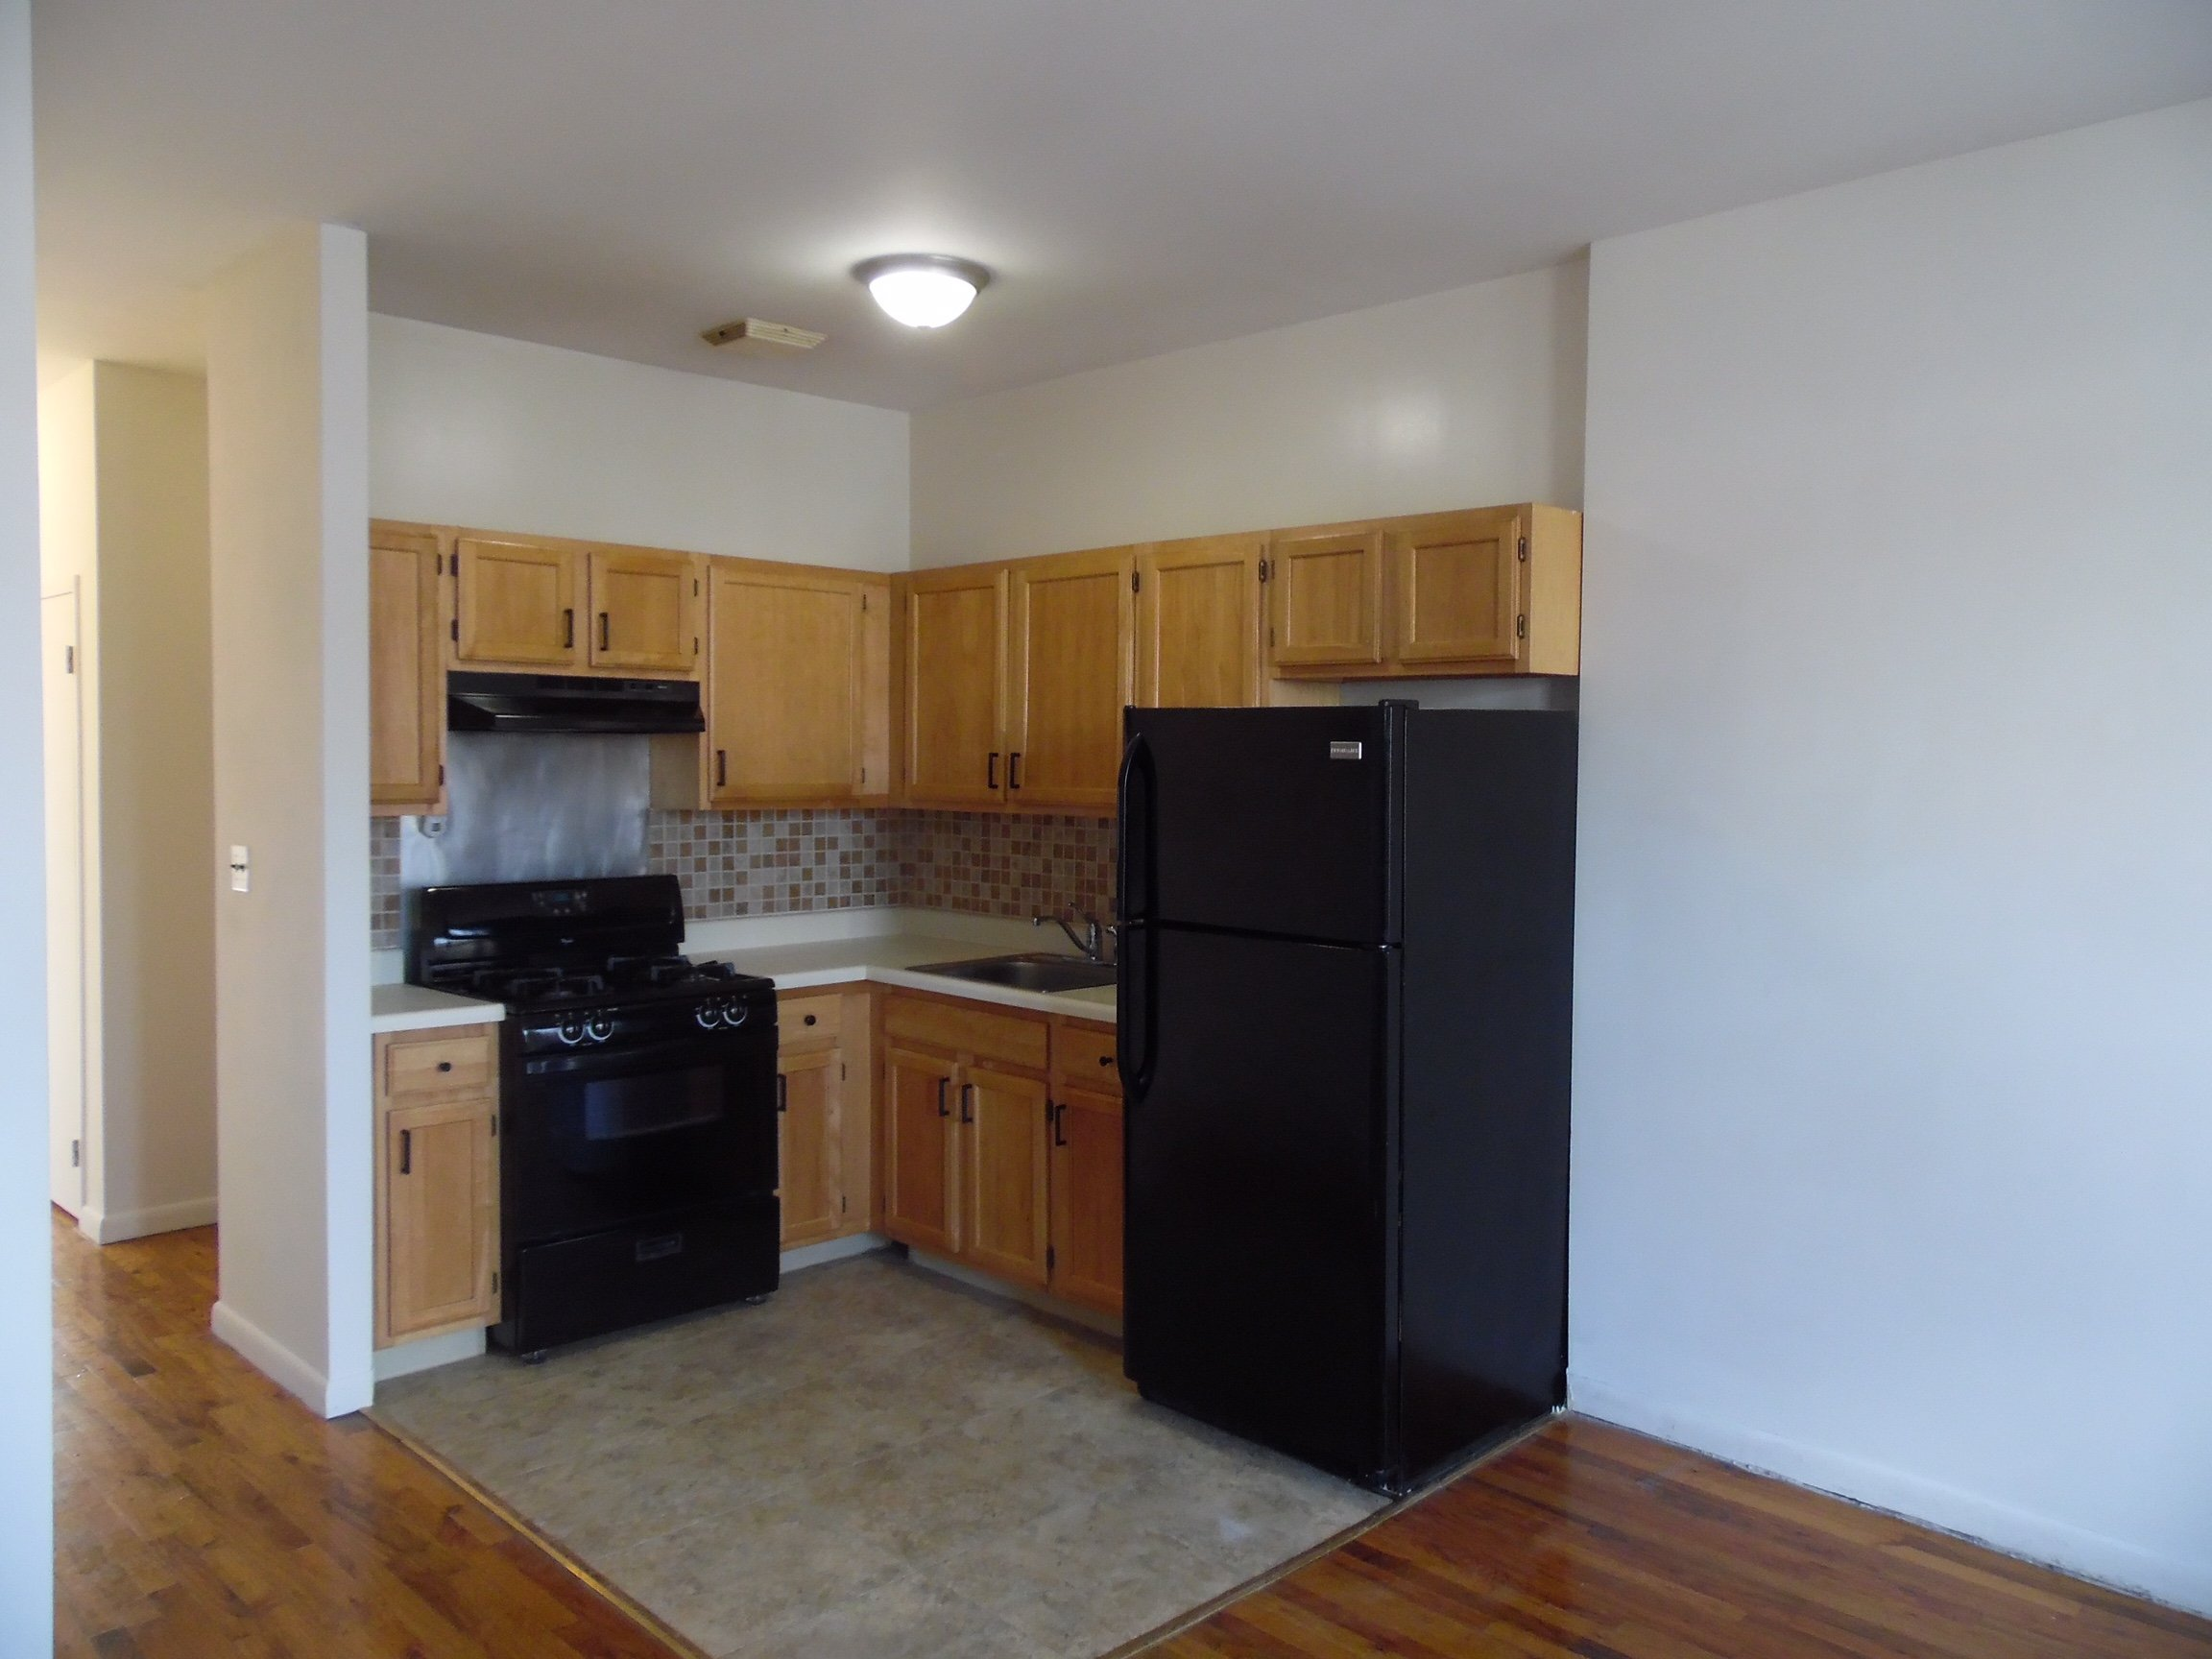 Dean Street 2BR Apt For Rent In Crown Heights CRG3201